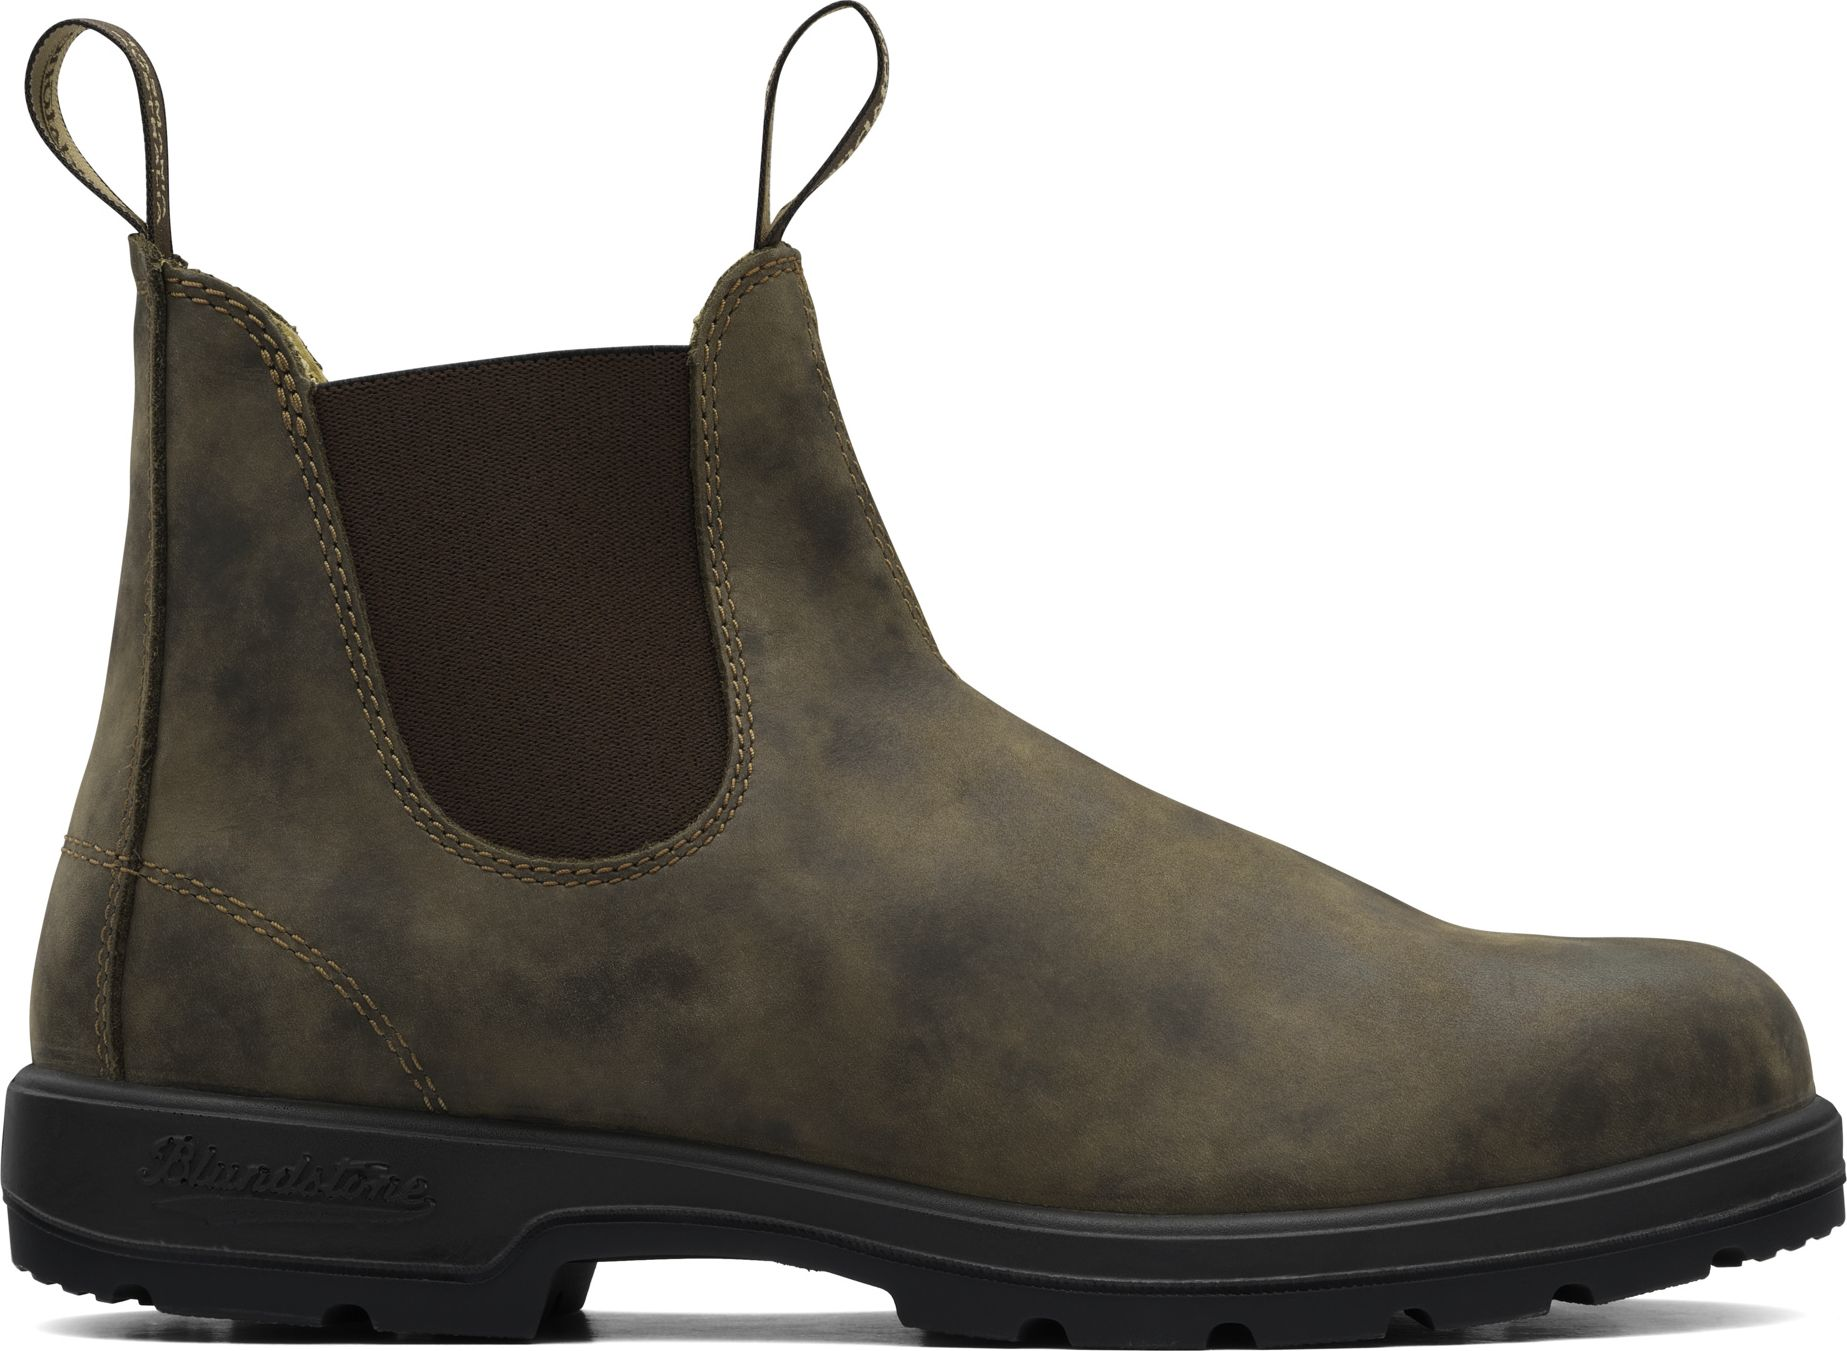 Blundstone 585 Brown 37